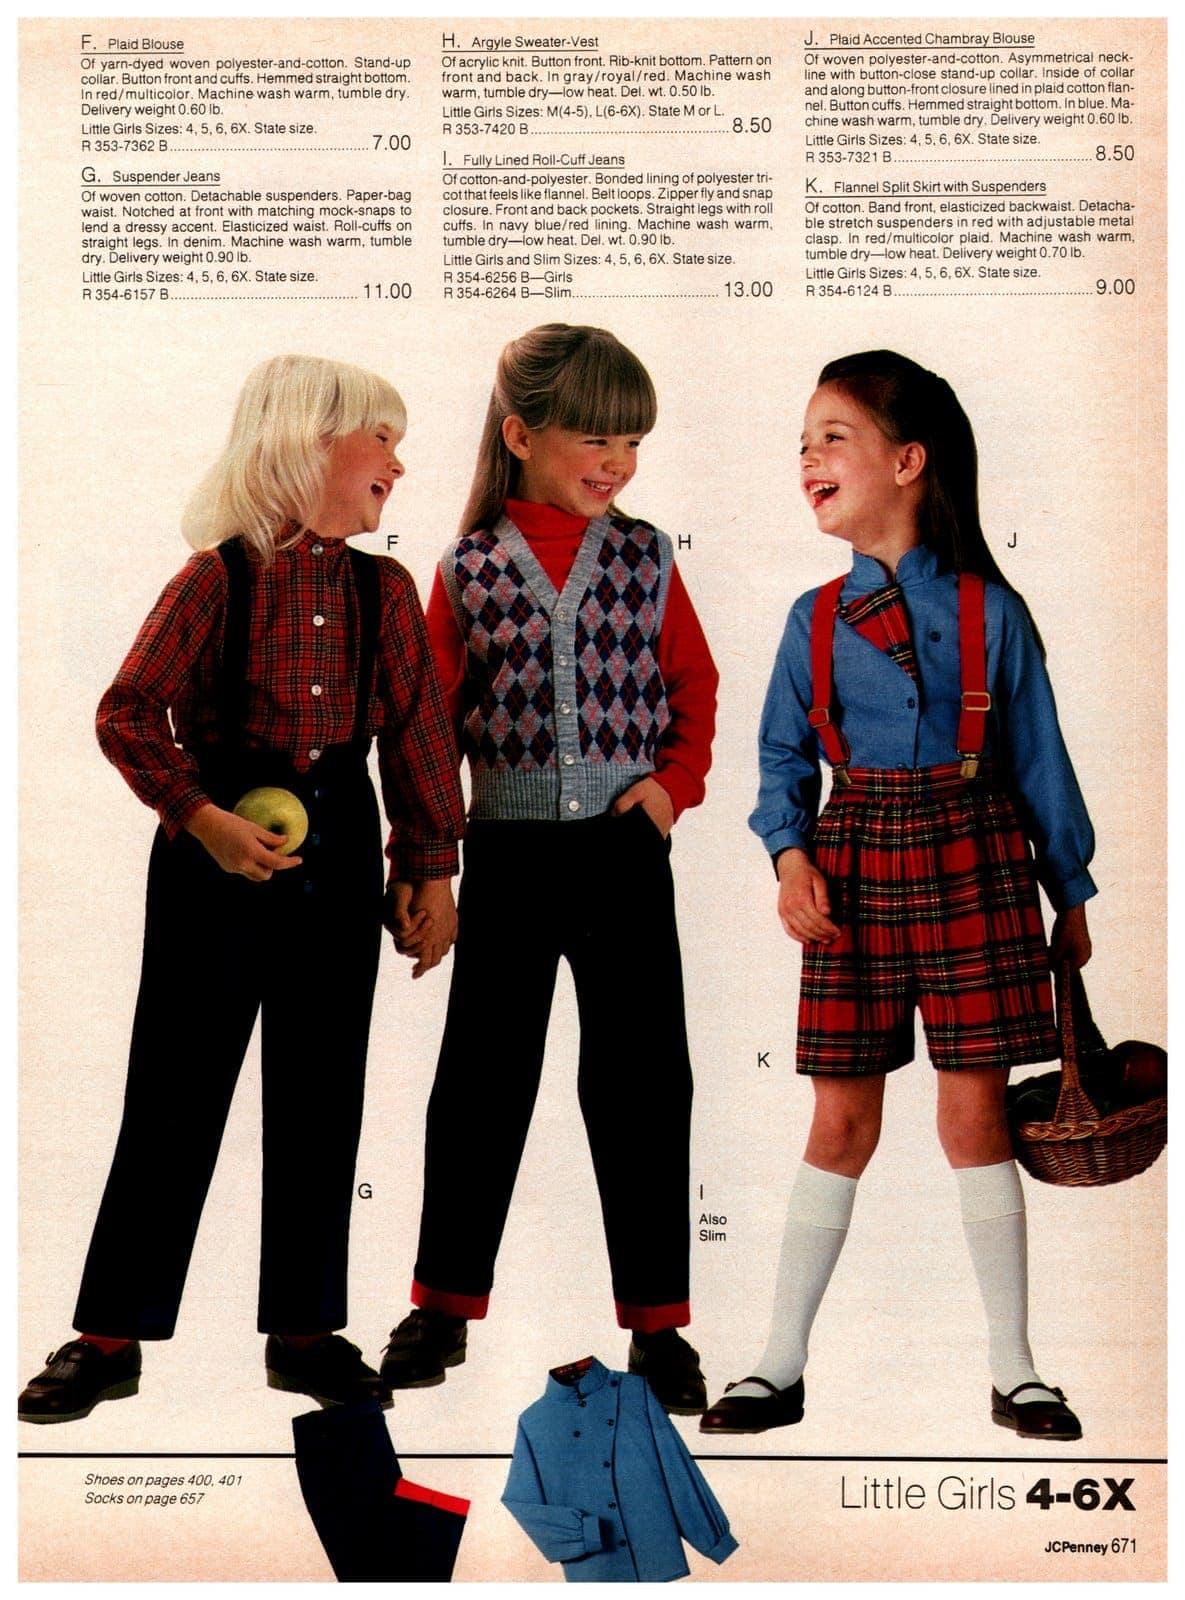 Preppy vintage '80s styles for young girls